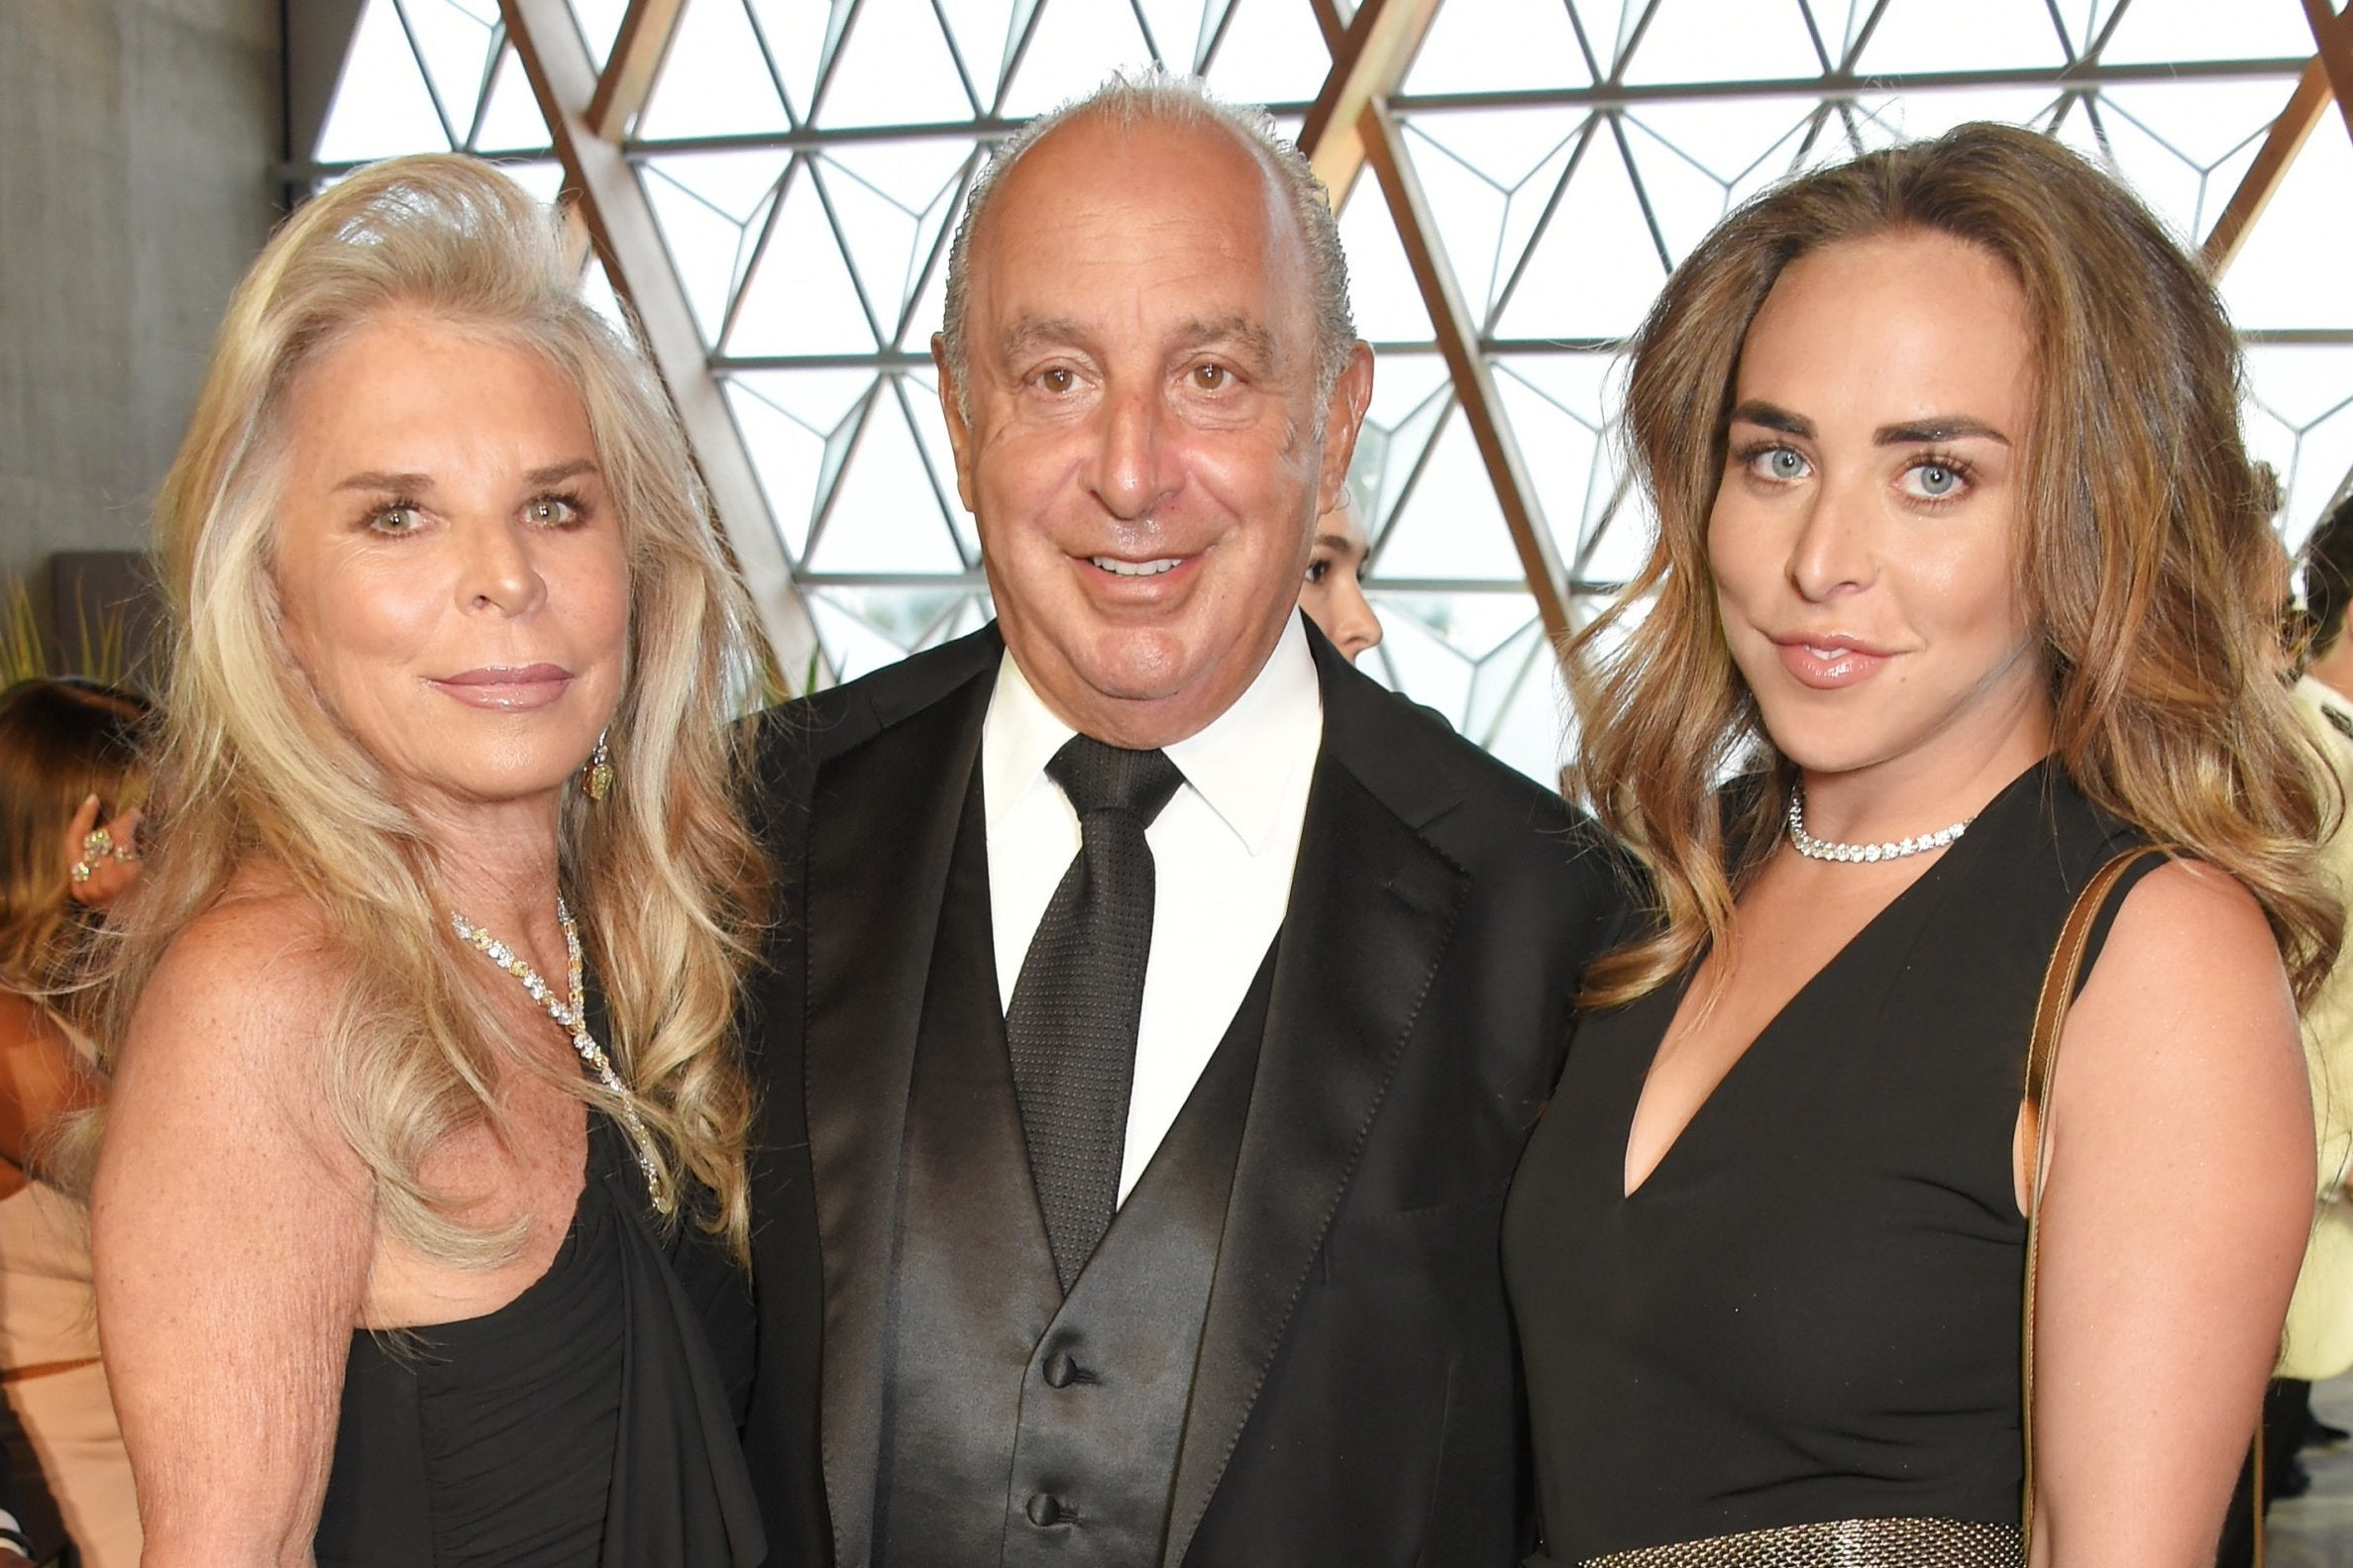 Janet Hain how ironic that philip green was named in parliament, a